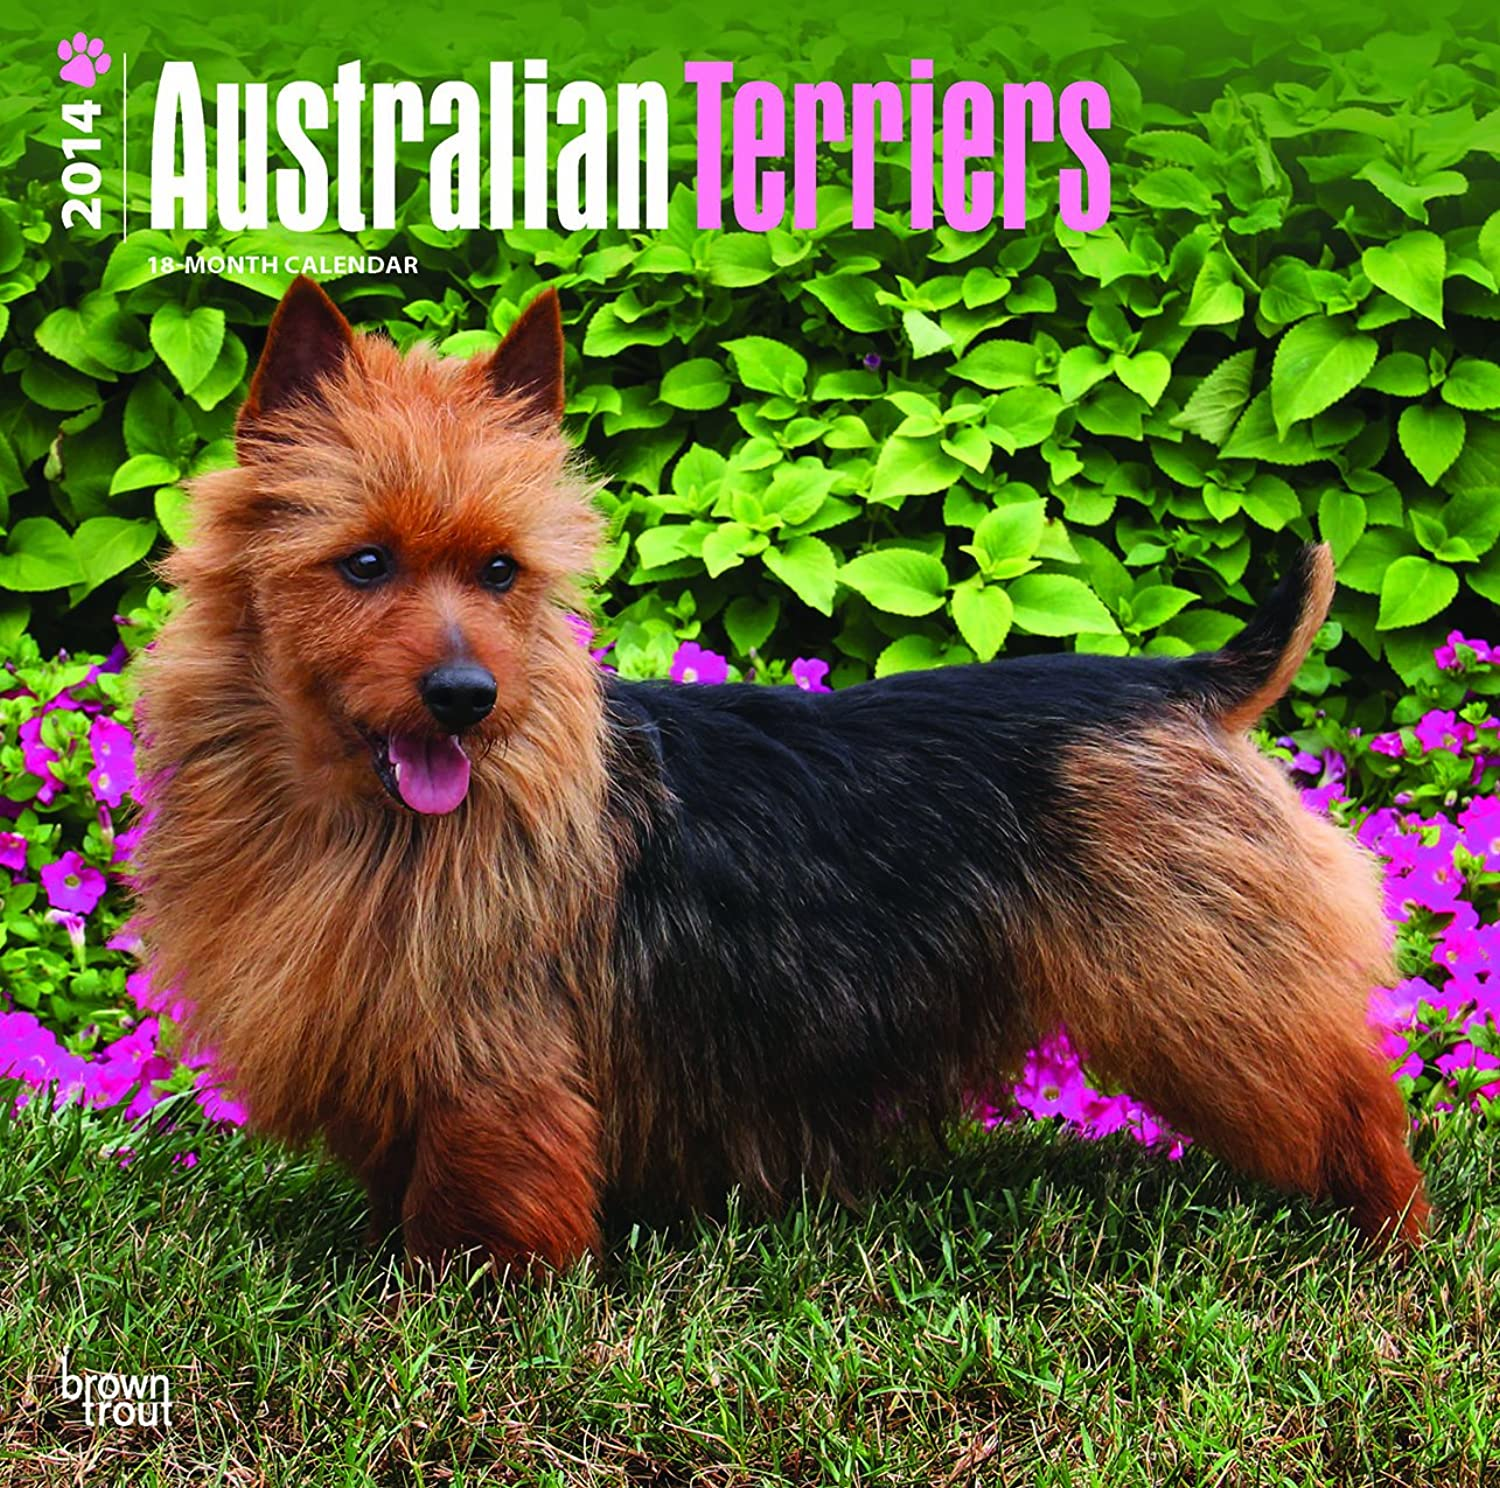 Australian Terriers 2014 Wall Calendar by 2014 Calendars B00C3DMI2K | Online-Shop